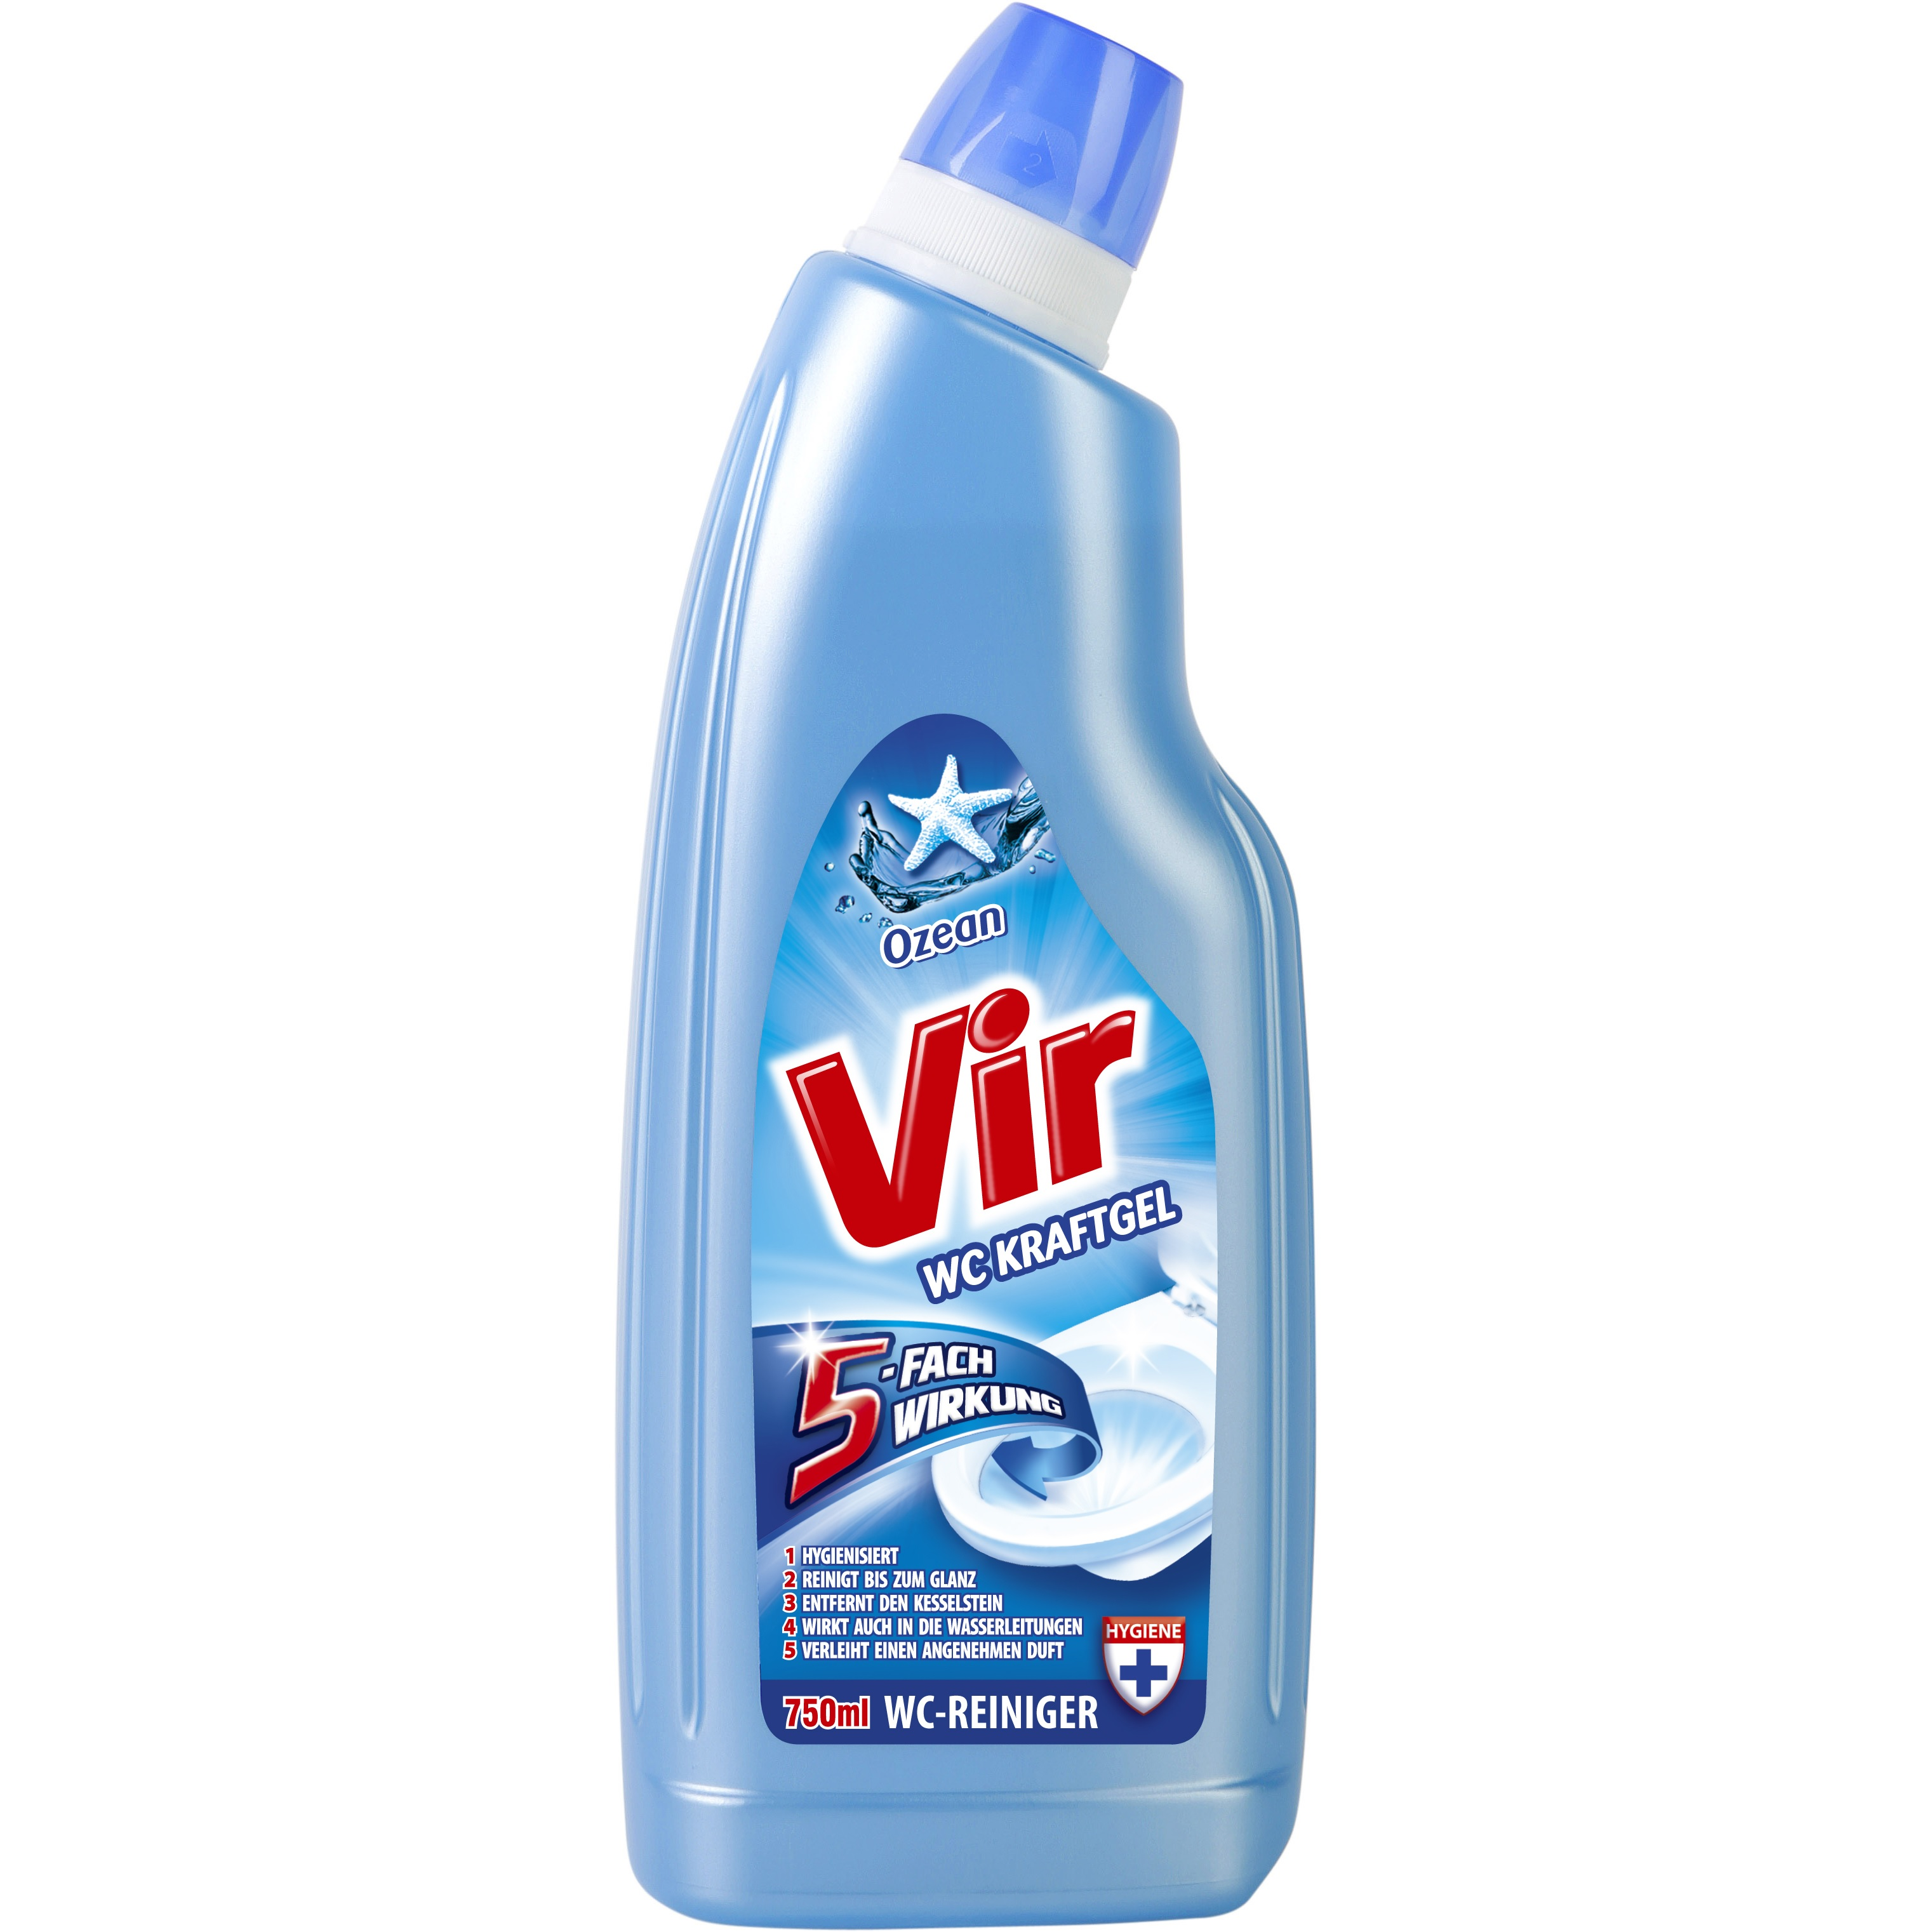 VIR WC GEL OCEAN 750ml